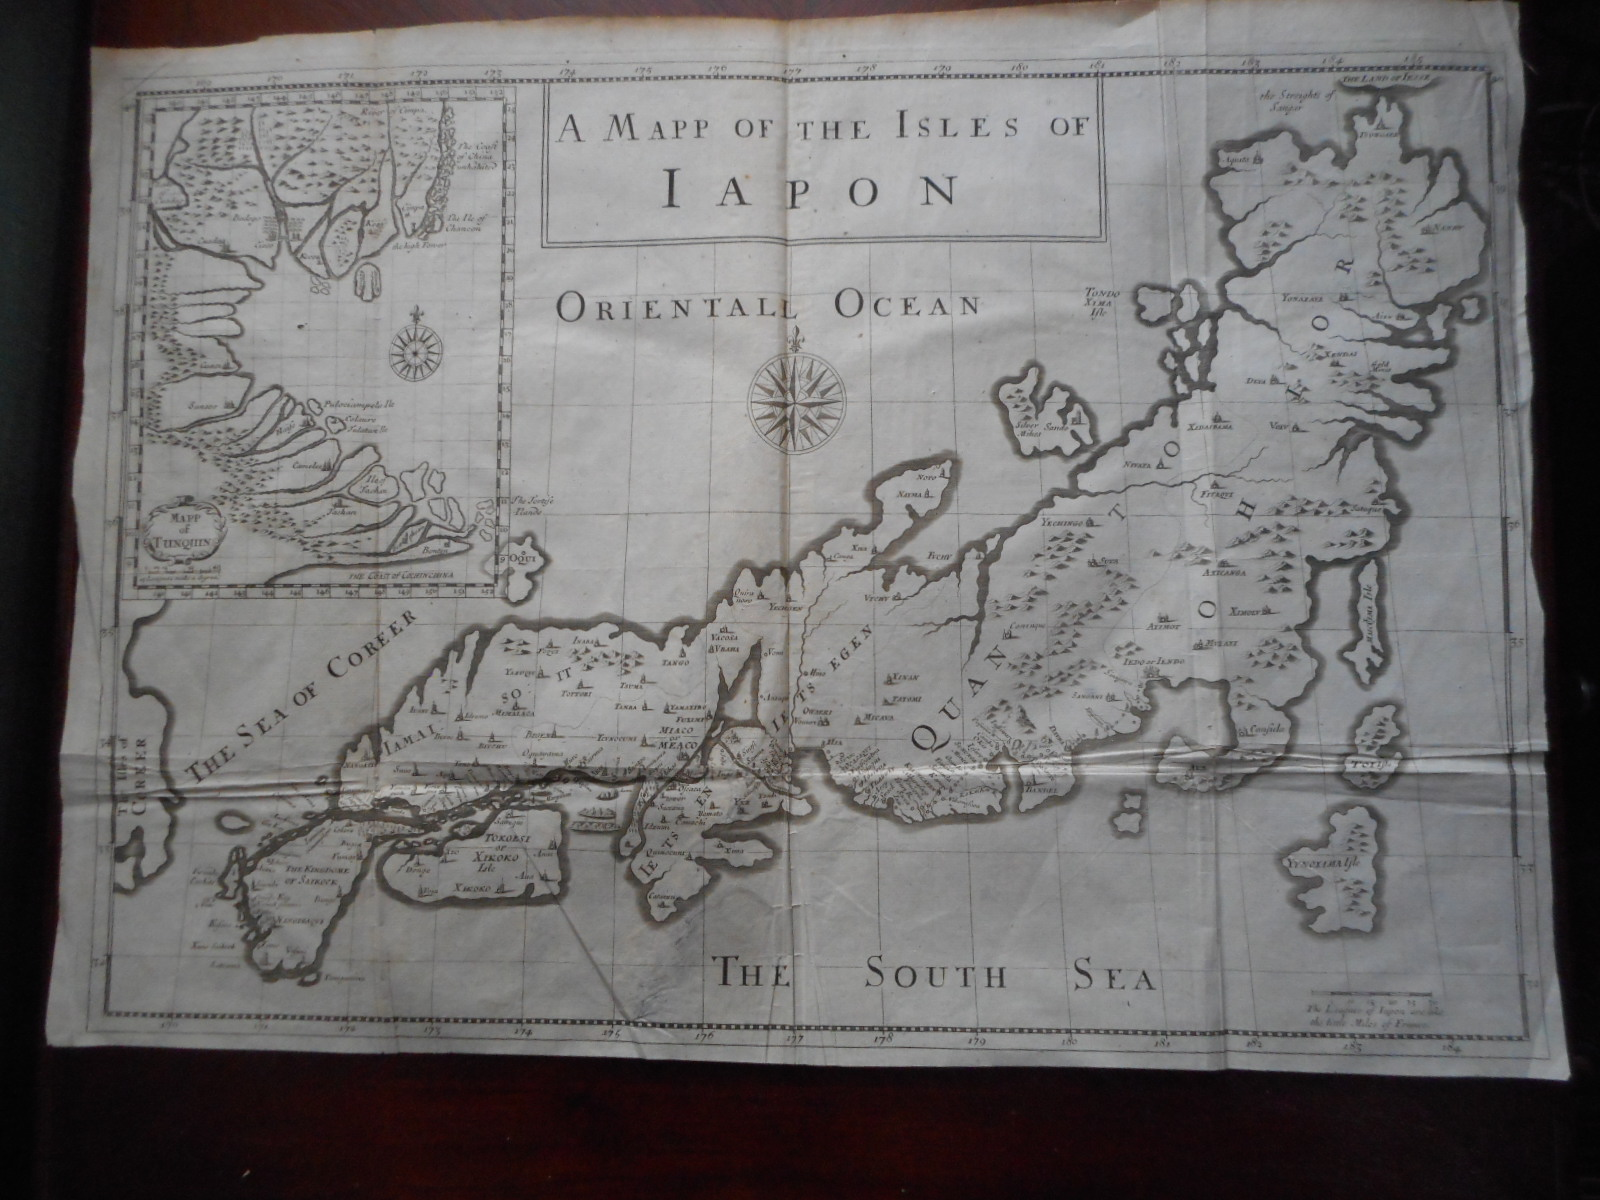 Mapp of the Isles of Iapon  (Map of the Isles of JAPAN. from Pitt's English Edition, 1688, of Tavernier's 'collection of Travels...' )